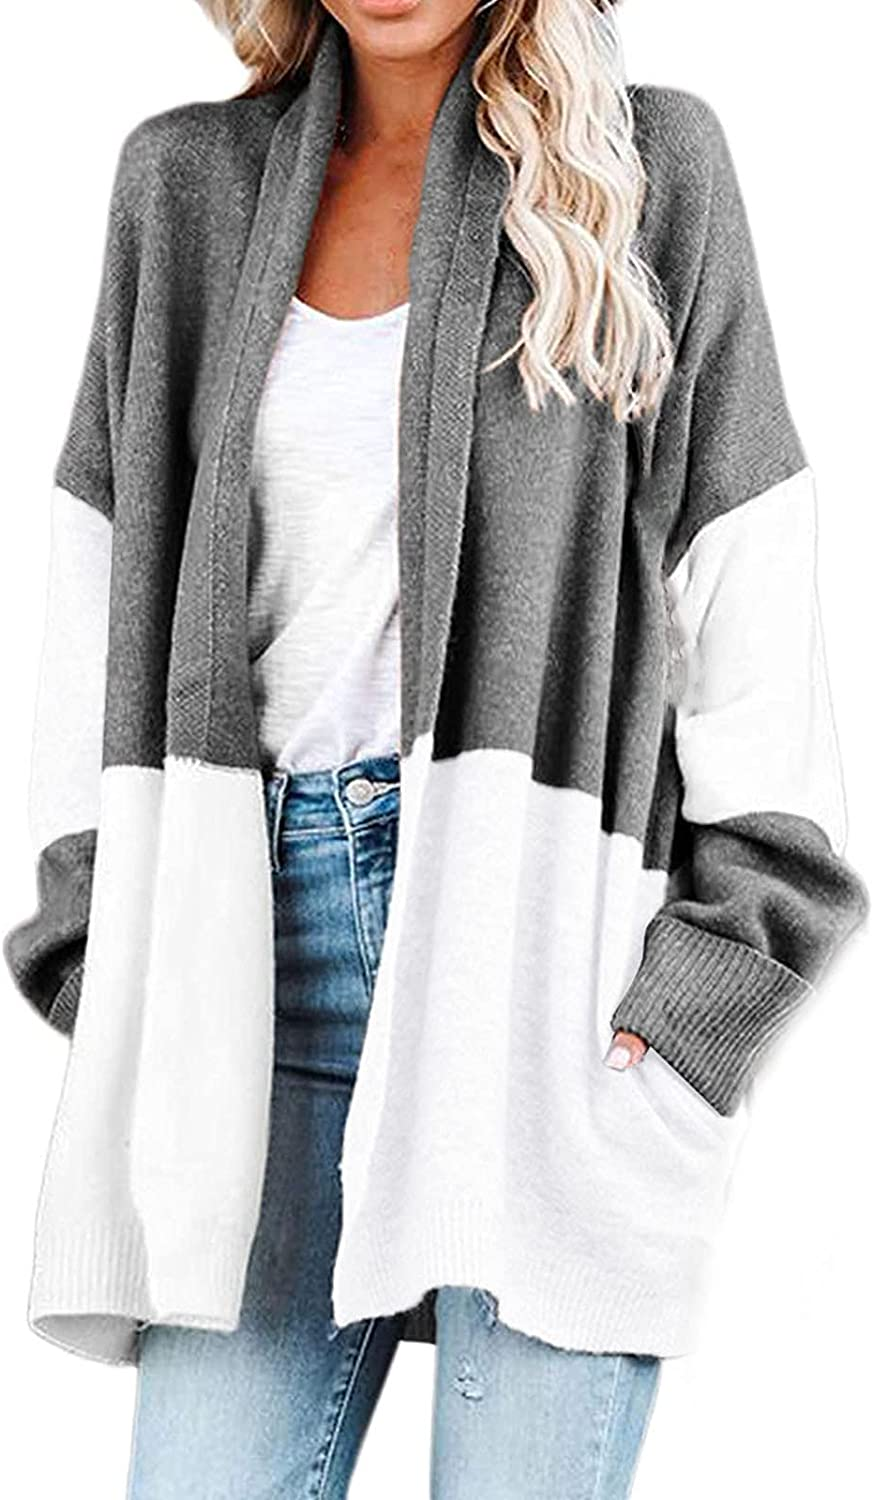 Two-Color Stitching Long Sleeve Lapel Collar Cardigans For Women Casual Fall Open Front Sweater Tops Coat